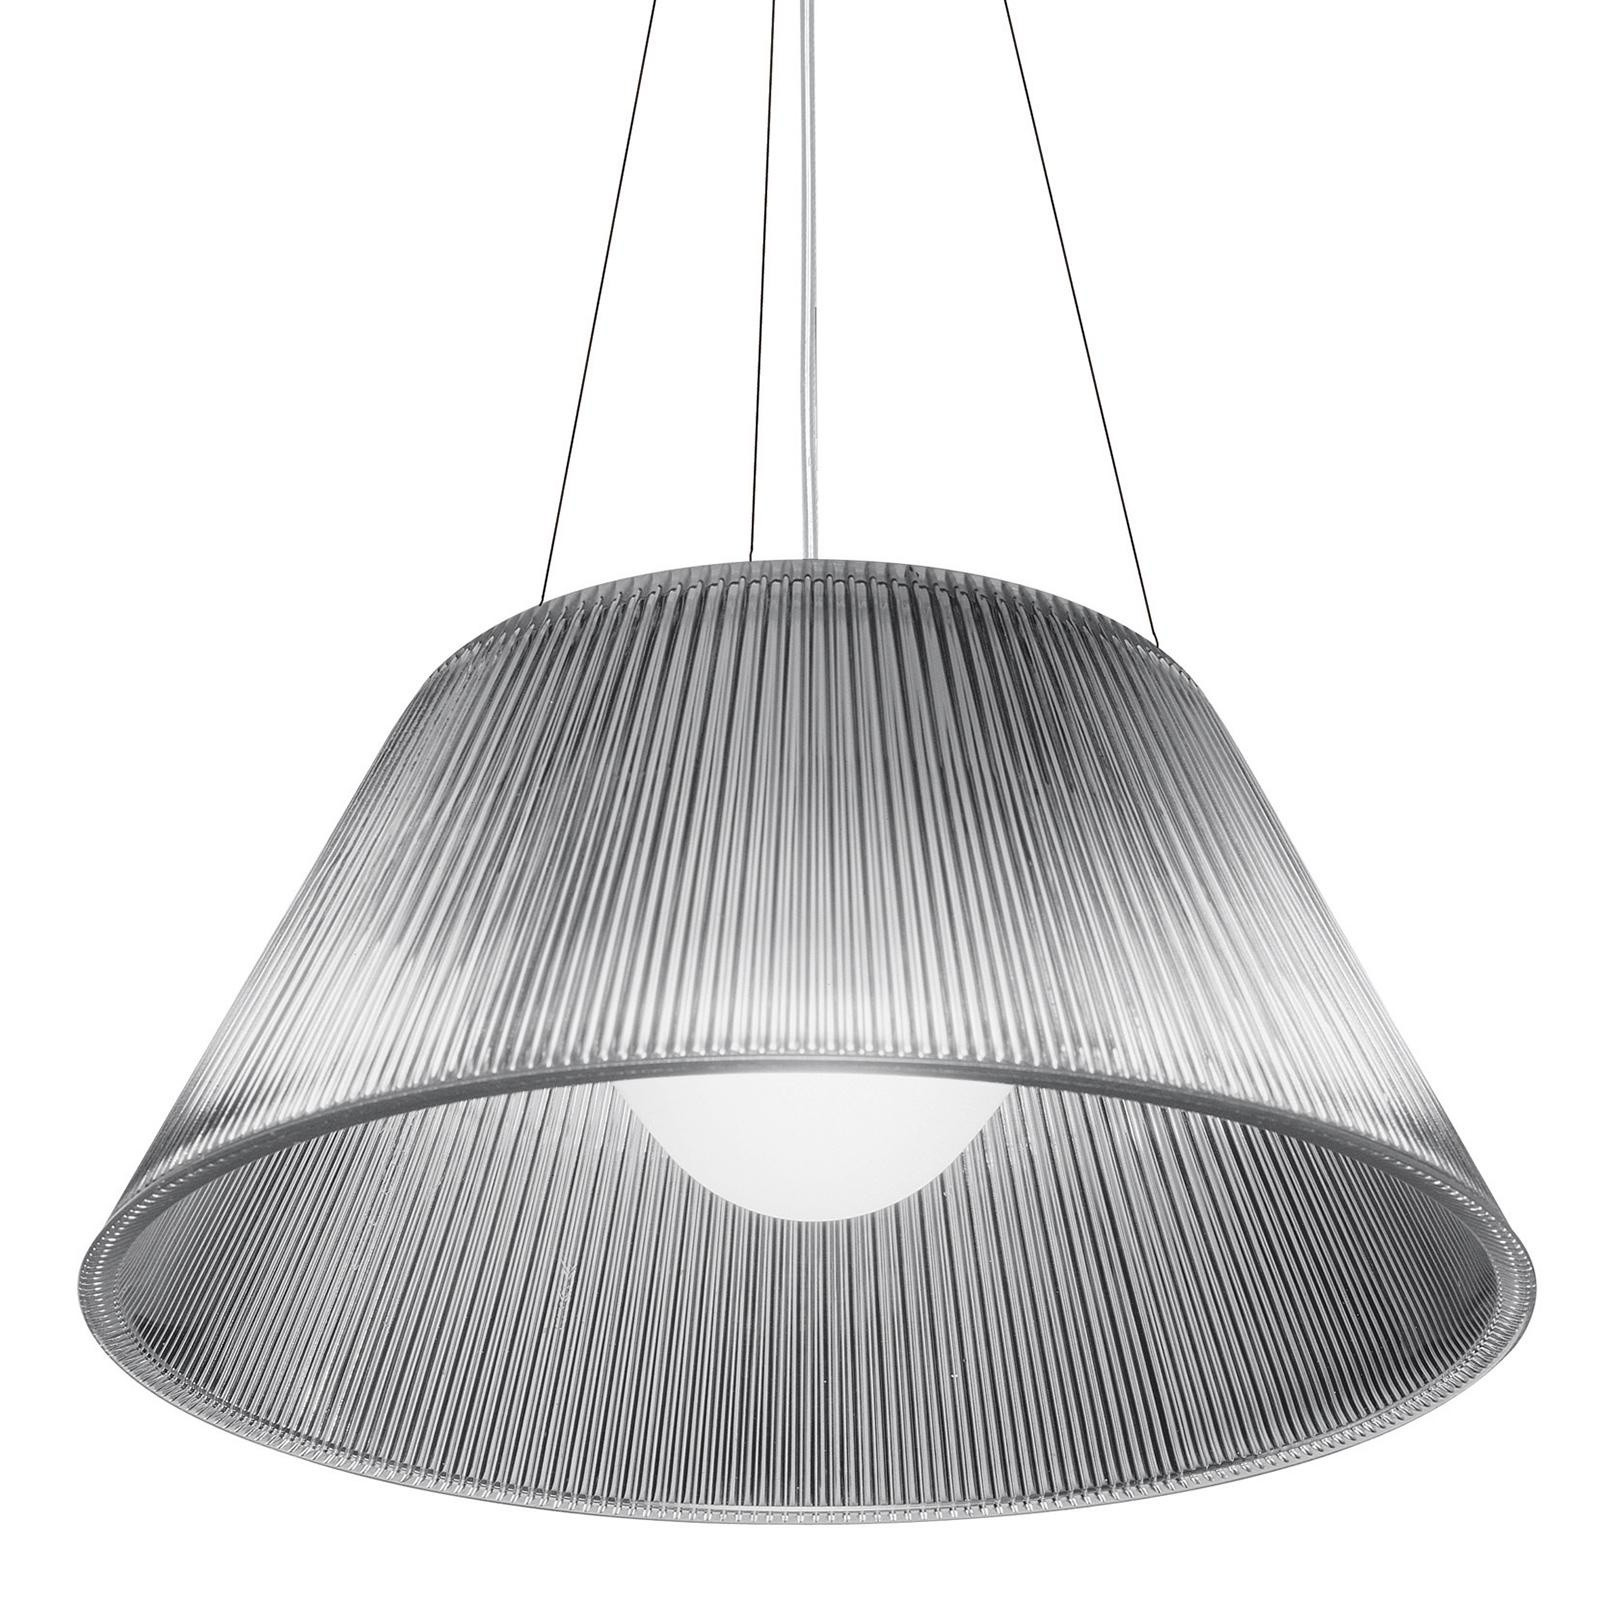 Philip Starck Flos Romeo Moon S2 Suspension Light Philippe Starck